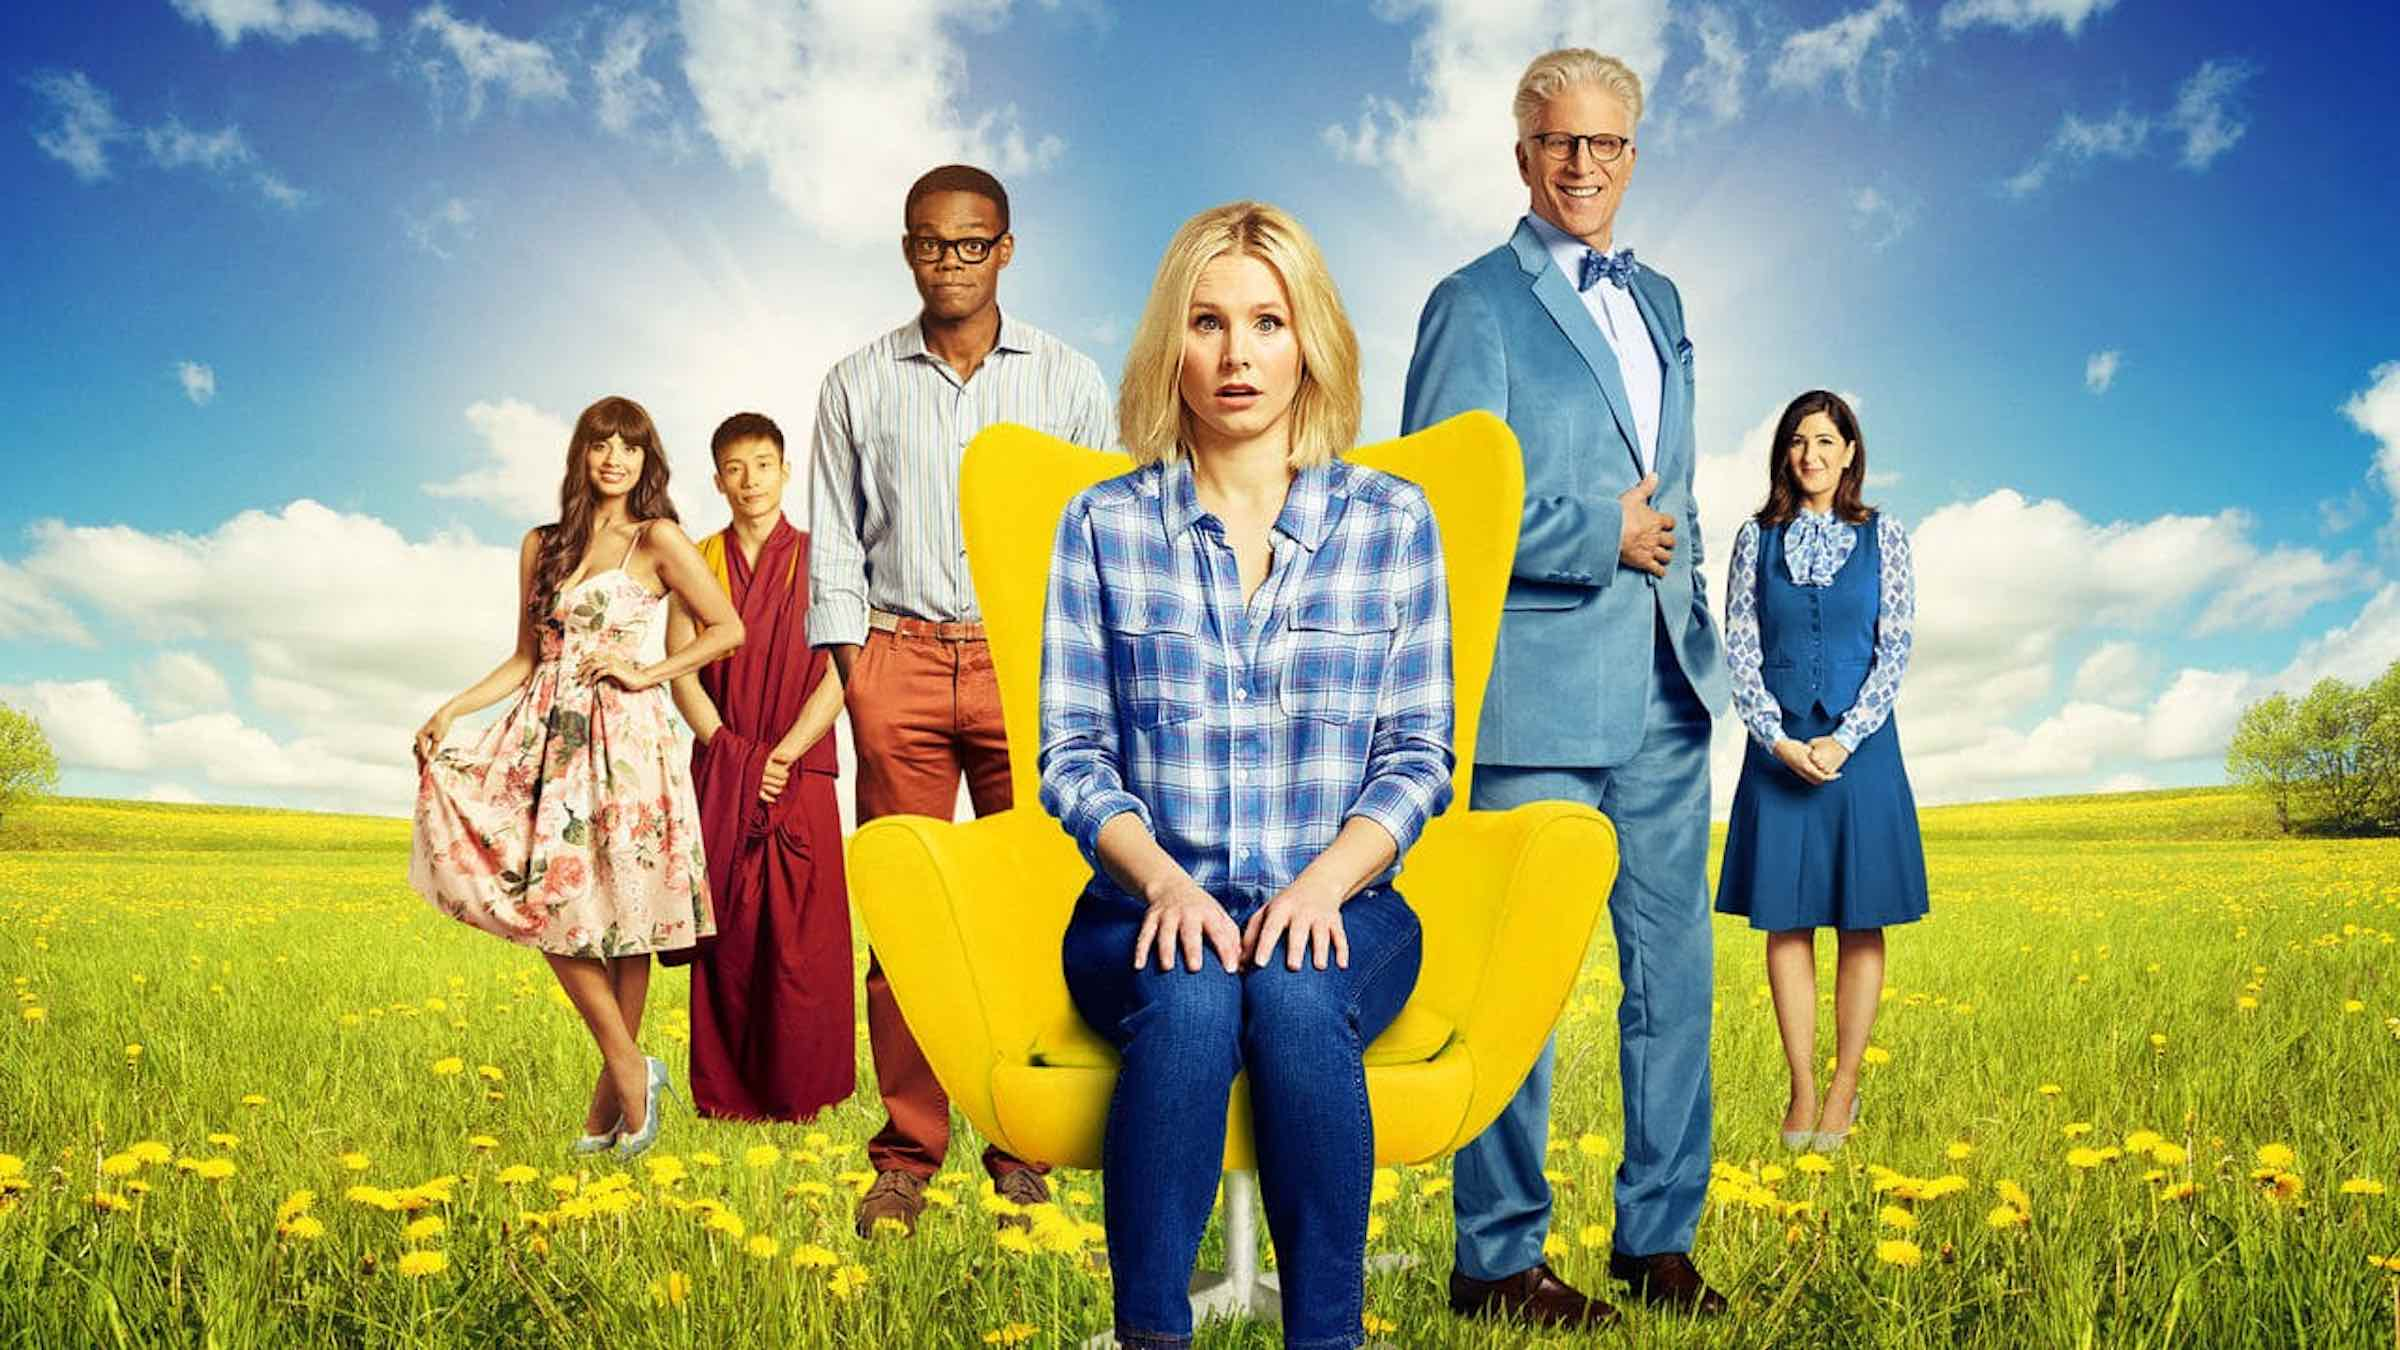 'The Good Place' is back, and it's getting down to business with only four episodes left. Here's our recap of S4E10 and all the motherforking tea.